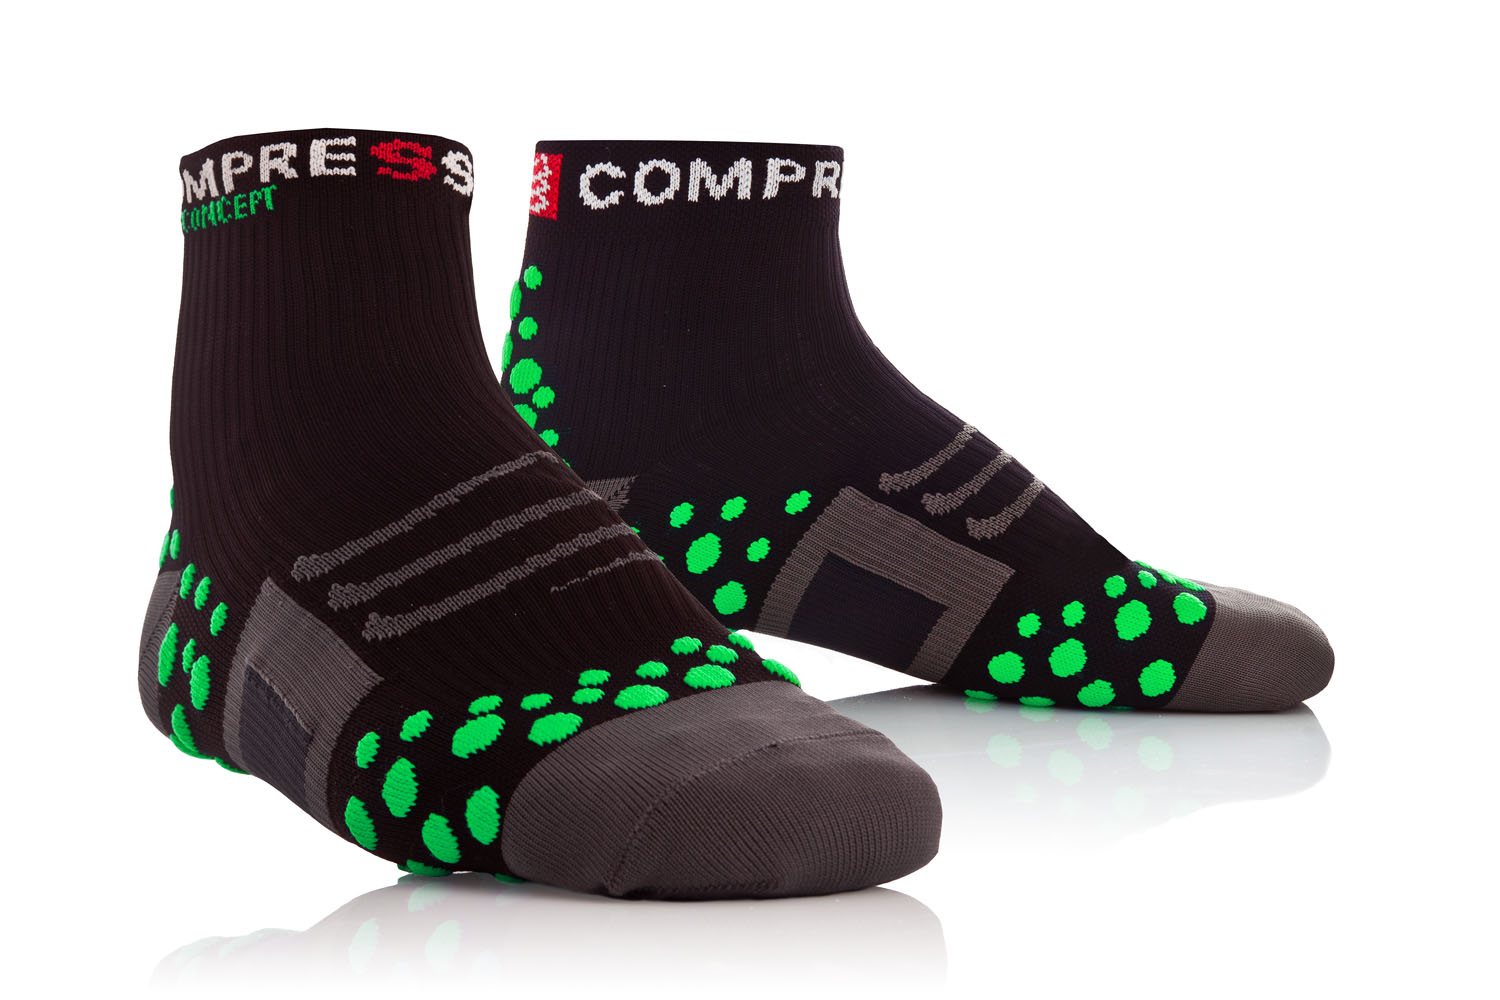 Run high Green-Black pair-72Dpi